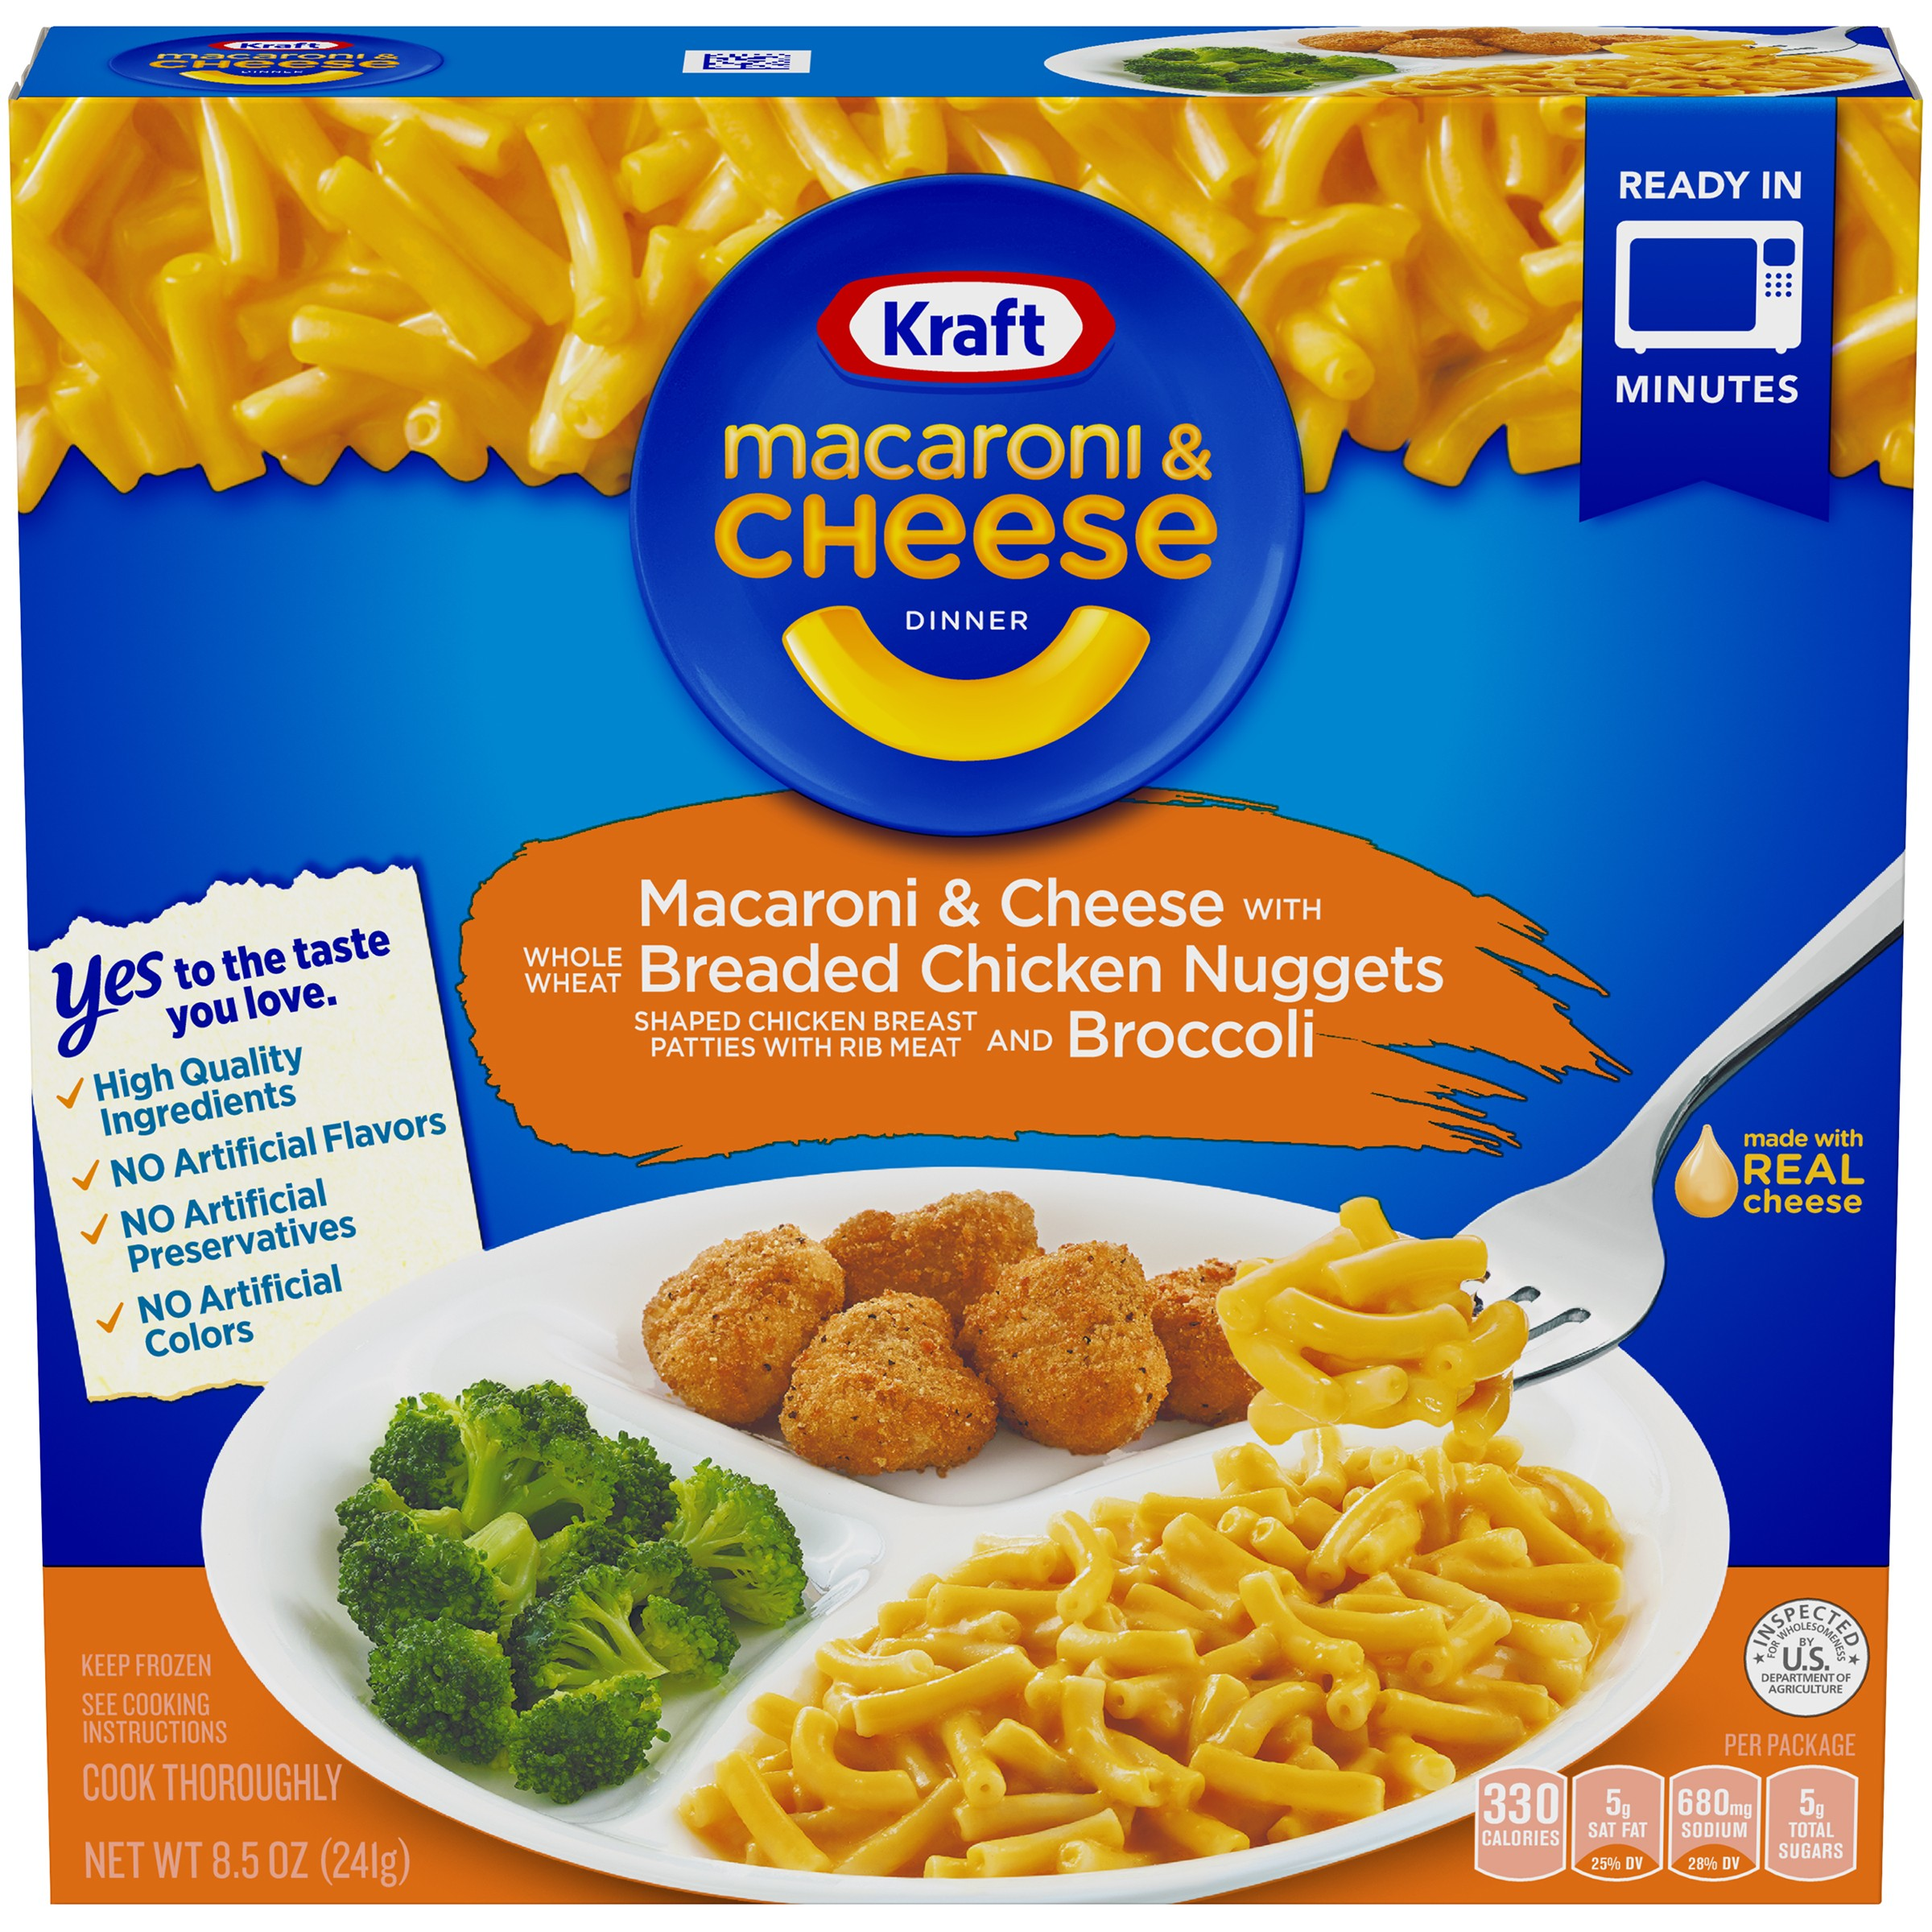 Kraft Macaroni & Cheese Dinner With Breaded Chicken Nuggets and Broccoli, 8.5 OZ